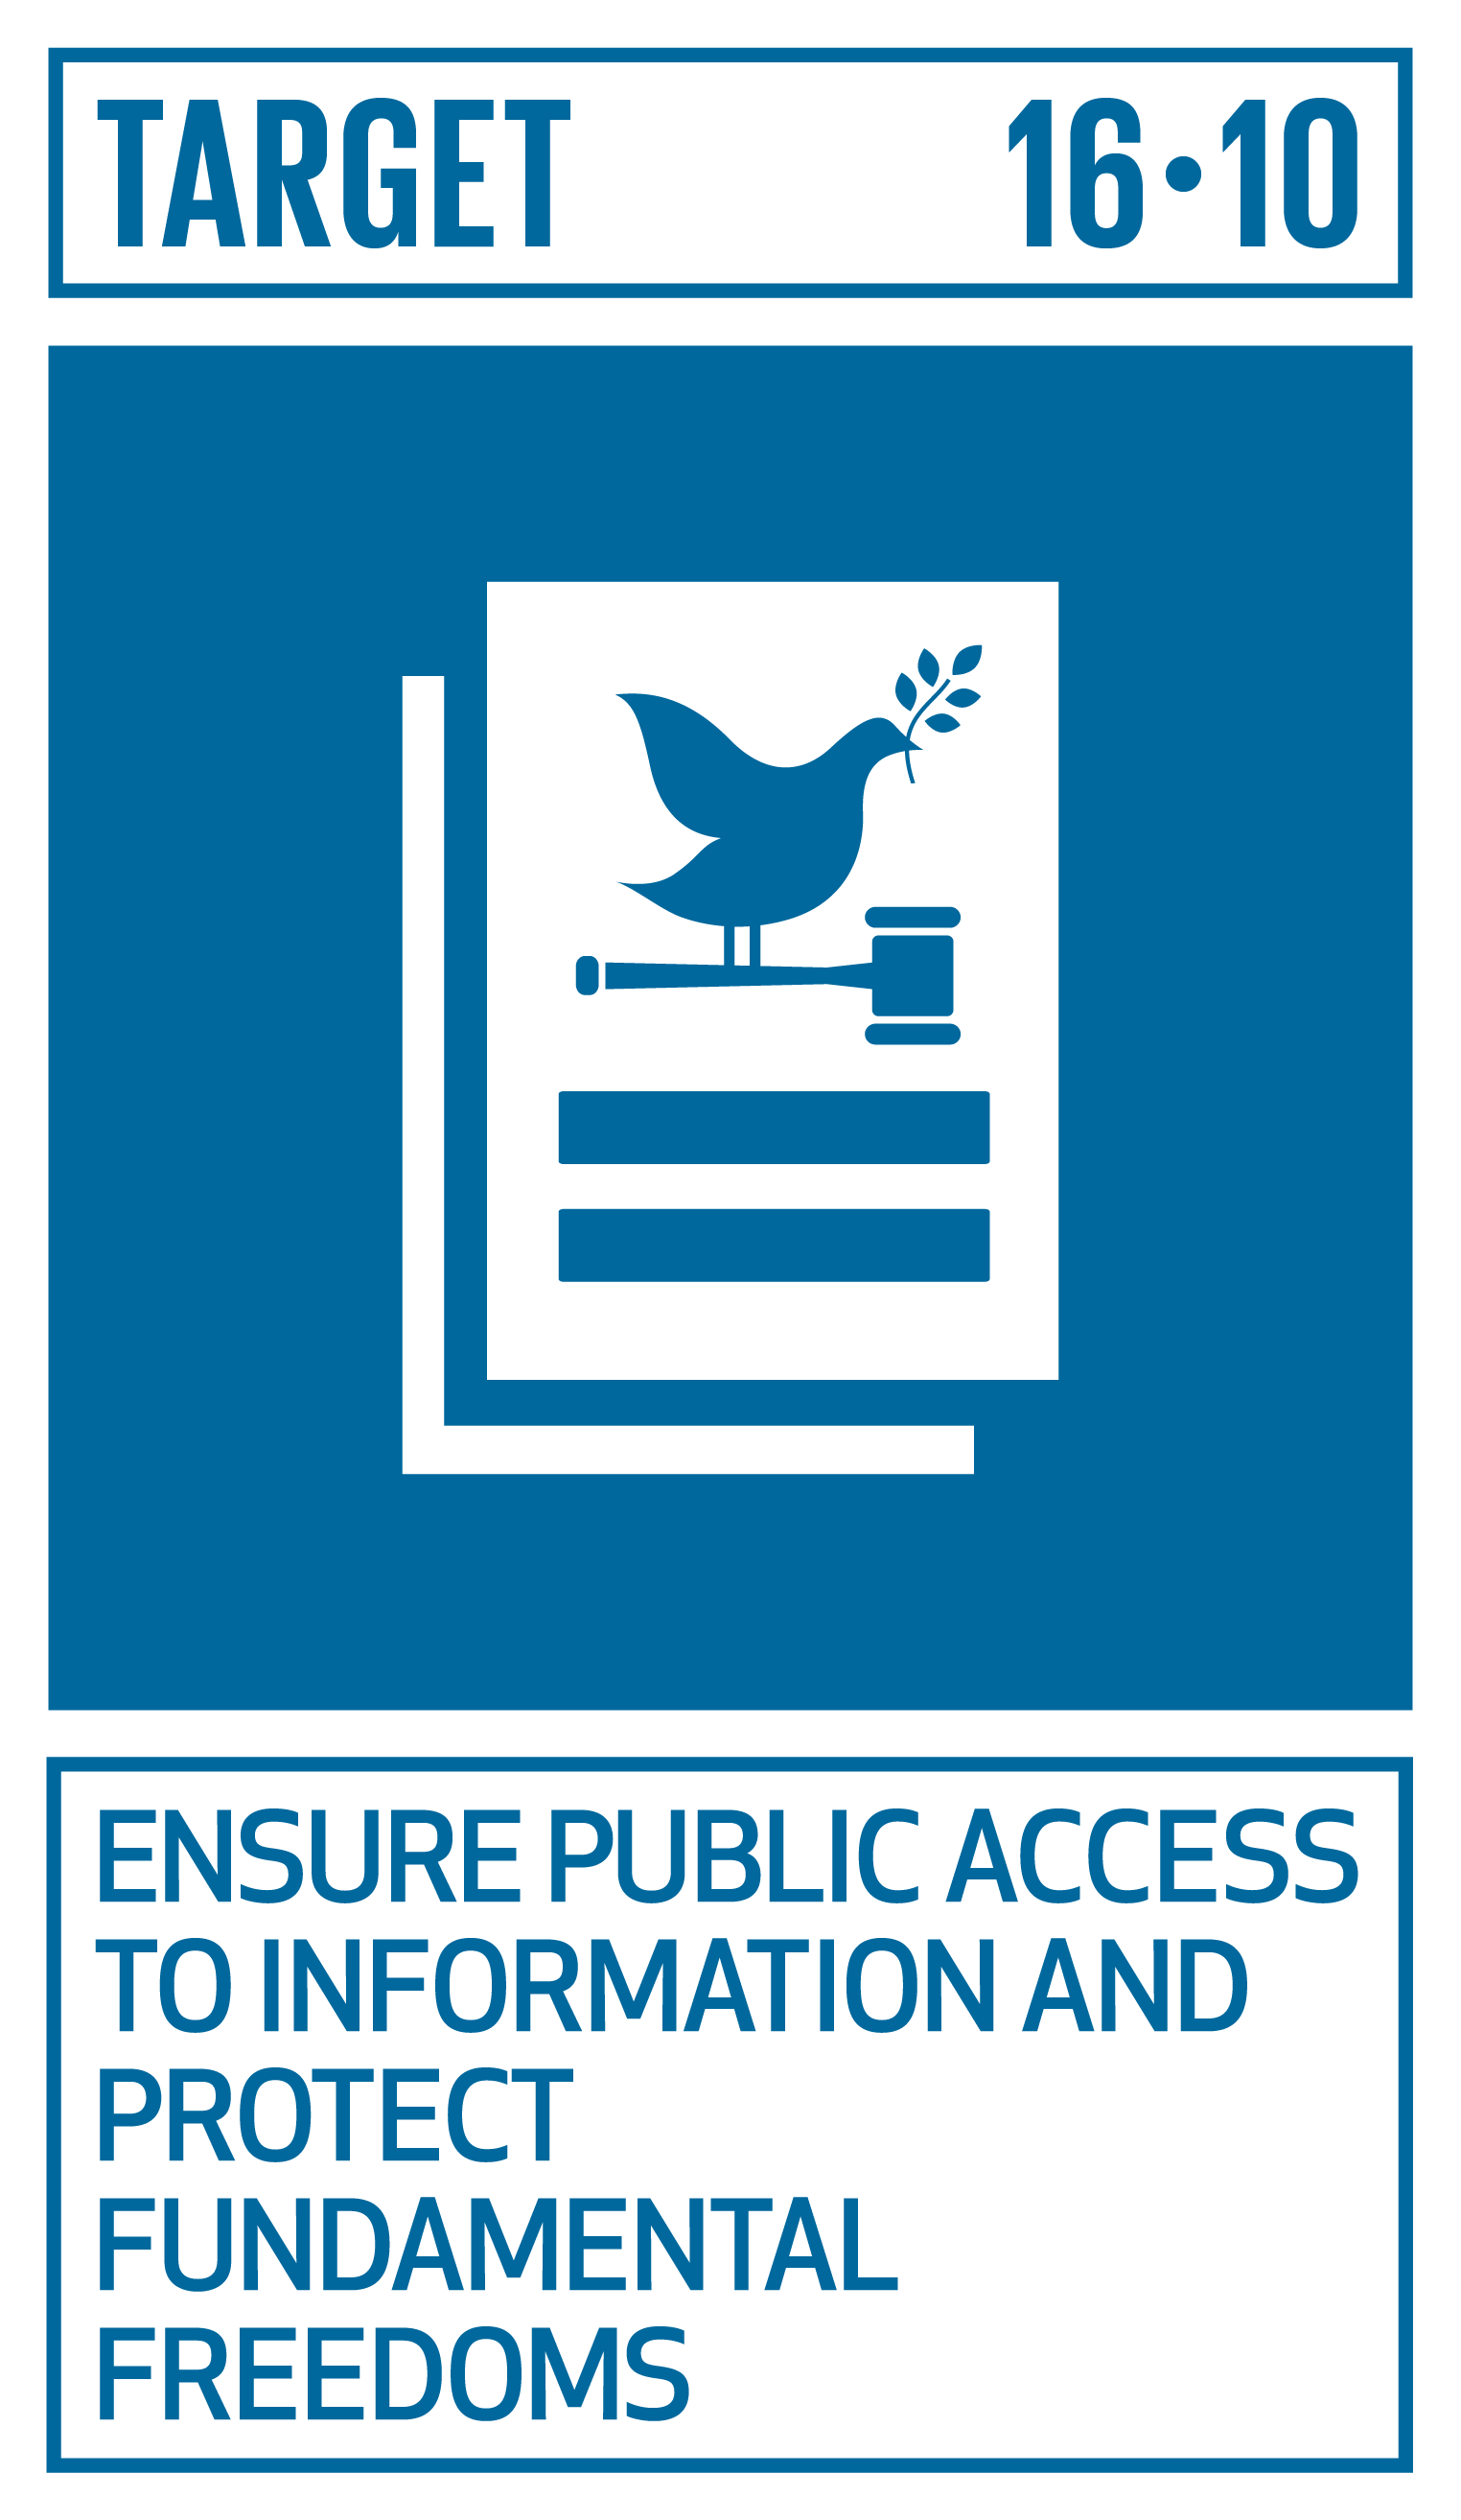 Ensure public access to information and protect fundamental freedoms, in accordance with national legislation and international agreements.   INDICATORS    16.10.1  Number of verified cases of killing, kidnapping, enforced disappearance, arbitrary detention and torture of journalists, associated media personnel, trade unionists and human rights advocates in the previous 12 months   16.10.2  Number of countries that adopt and implement constitutional, statutory and/or policy guarantees for public access to information